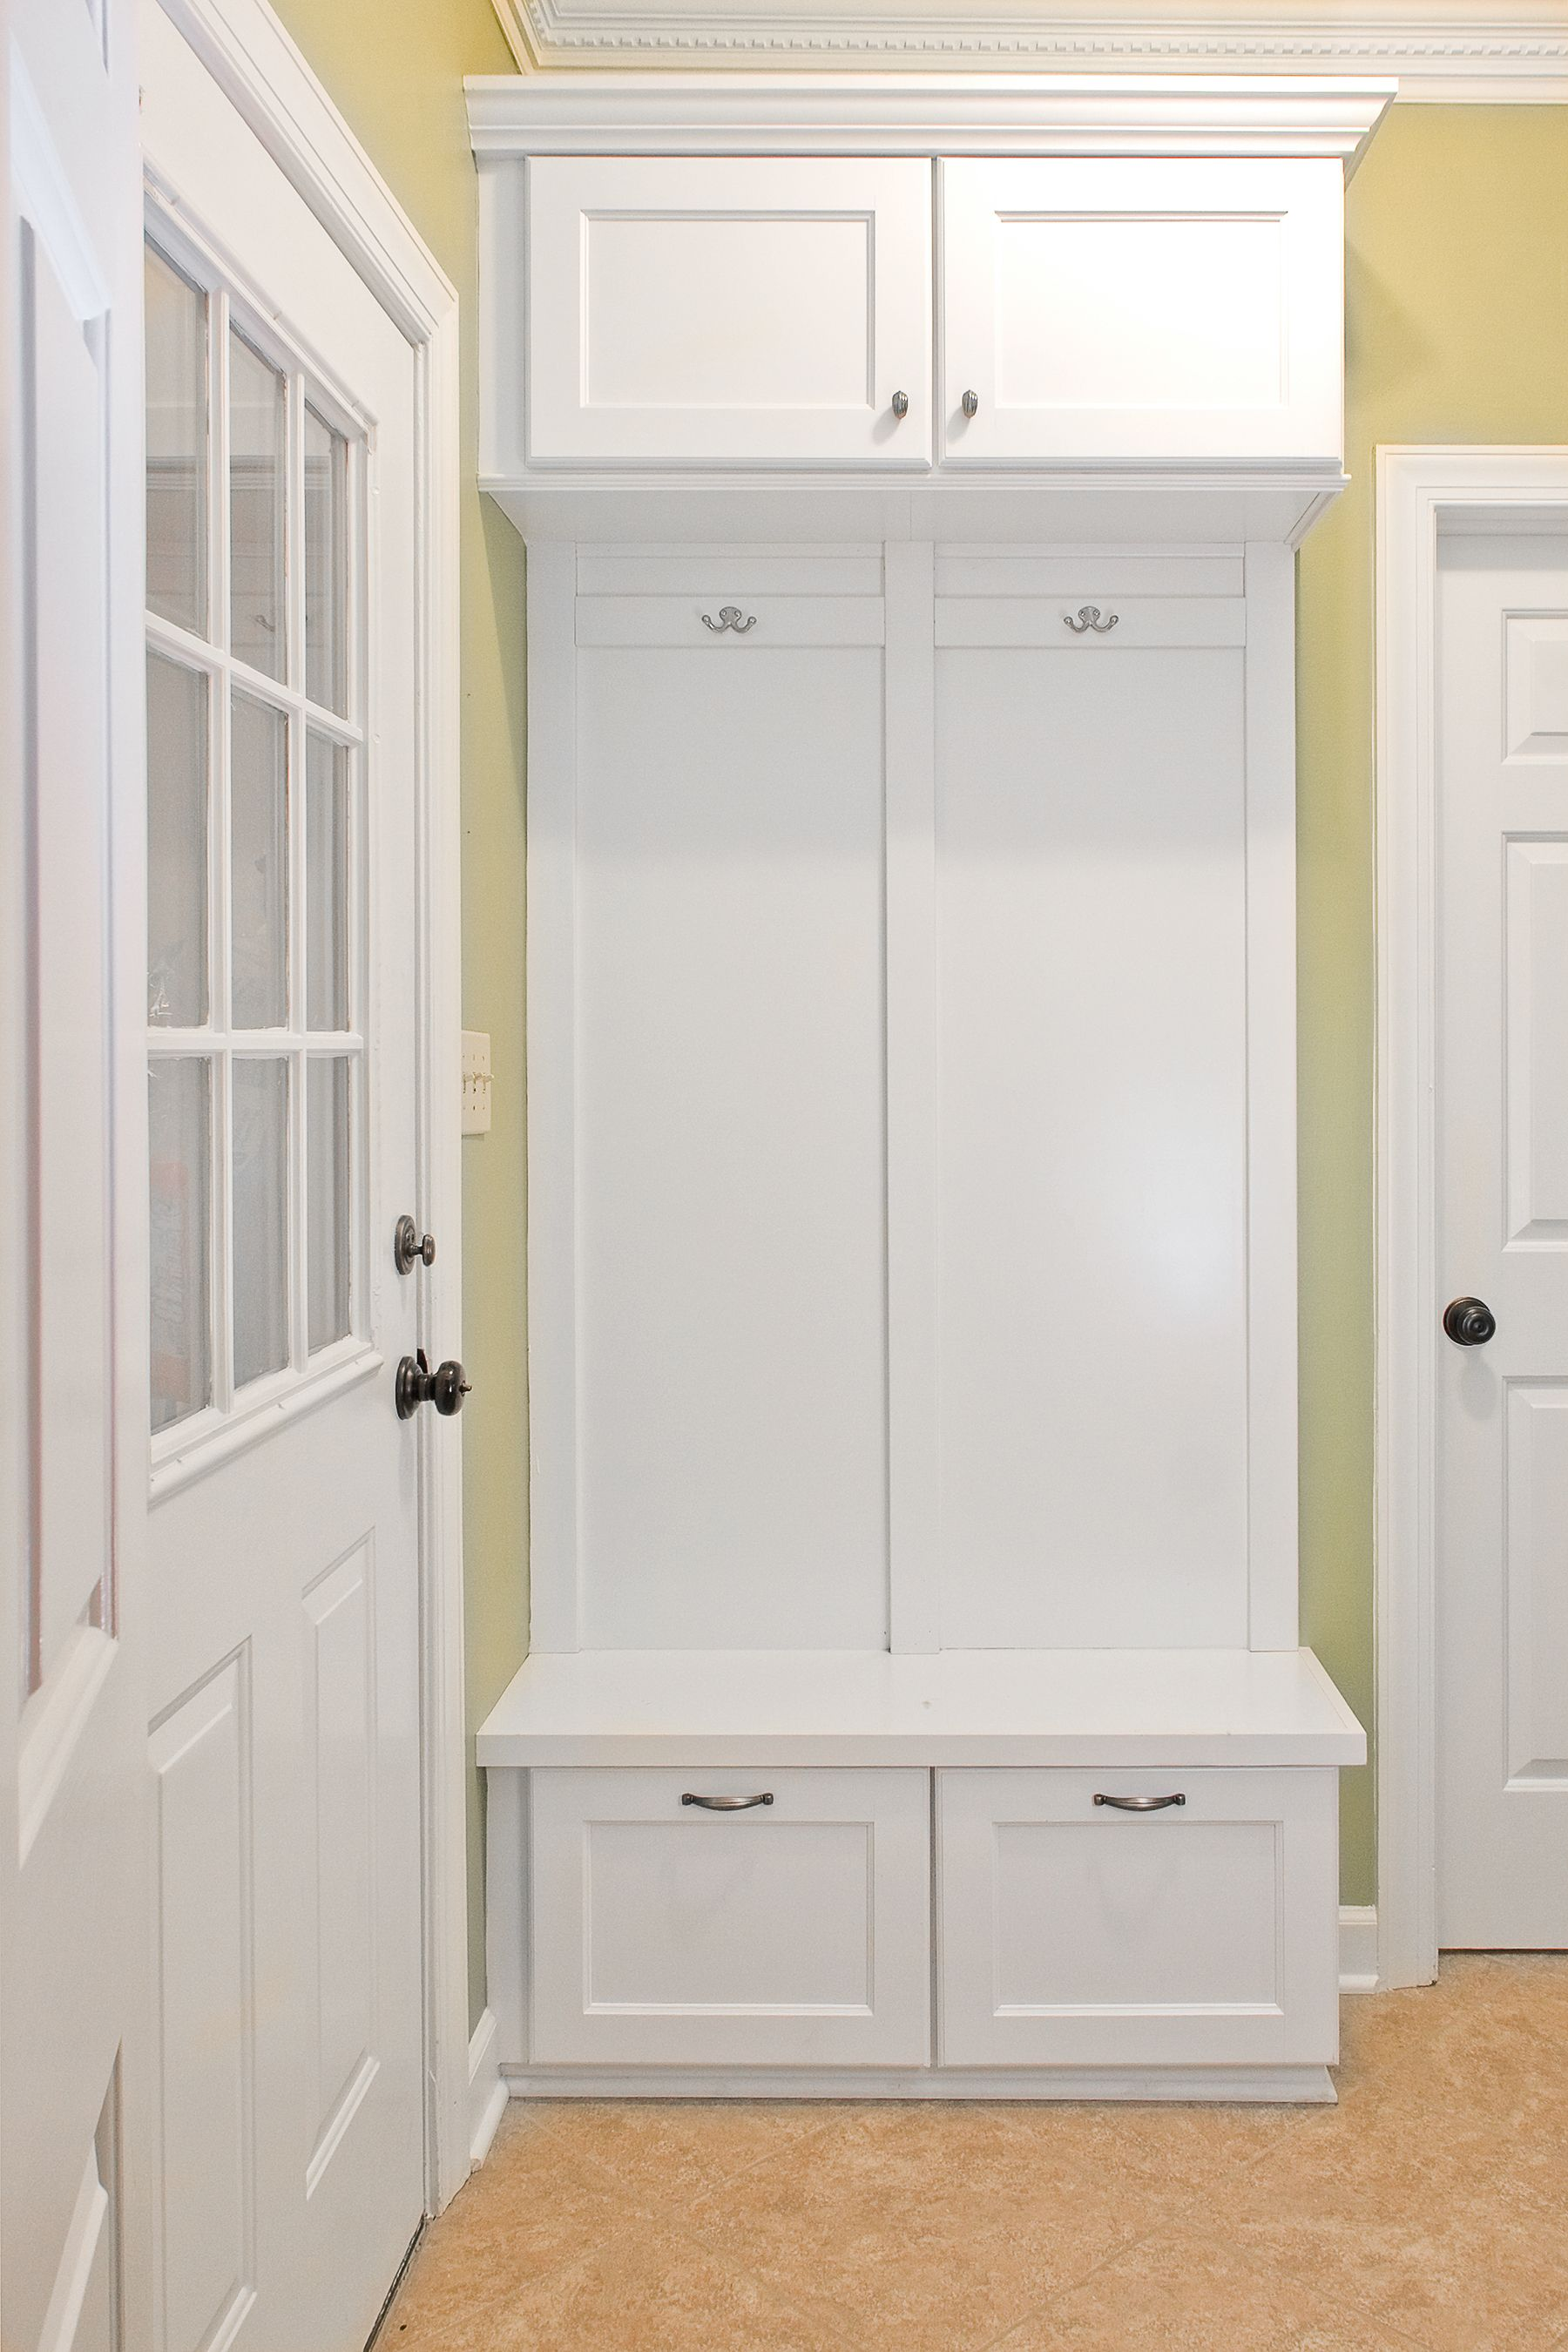 Coat rack kitchen cabinets remodel home ideas pinterest